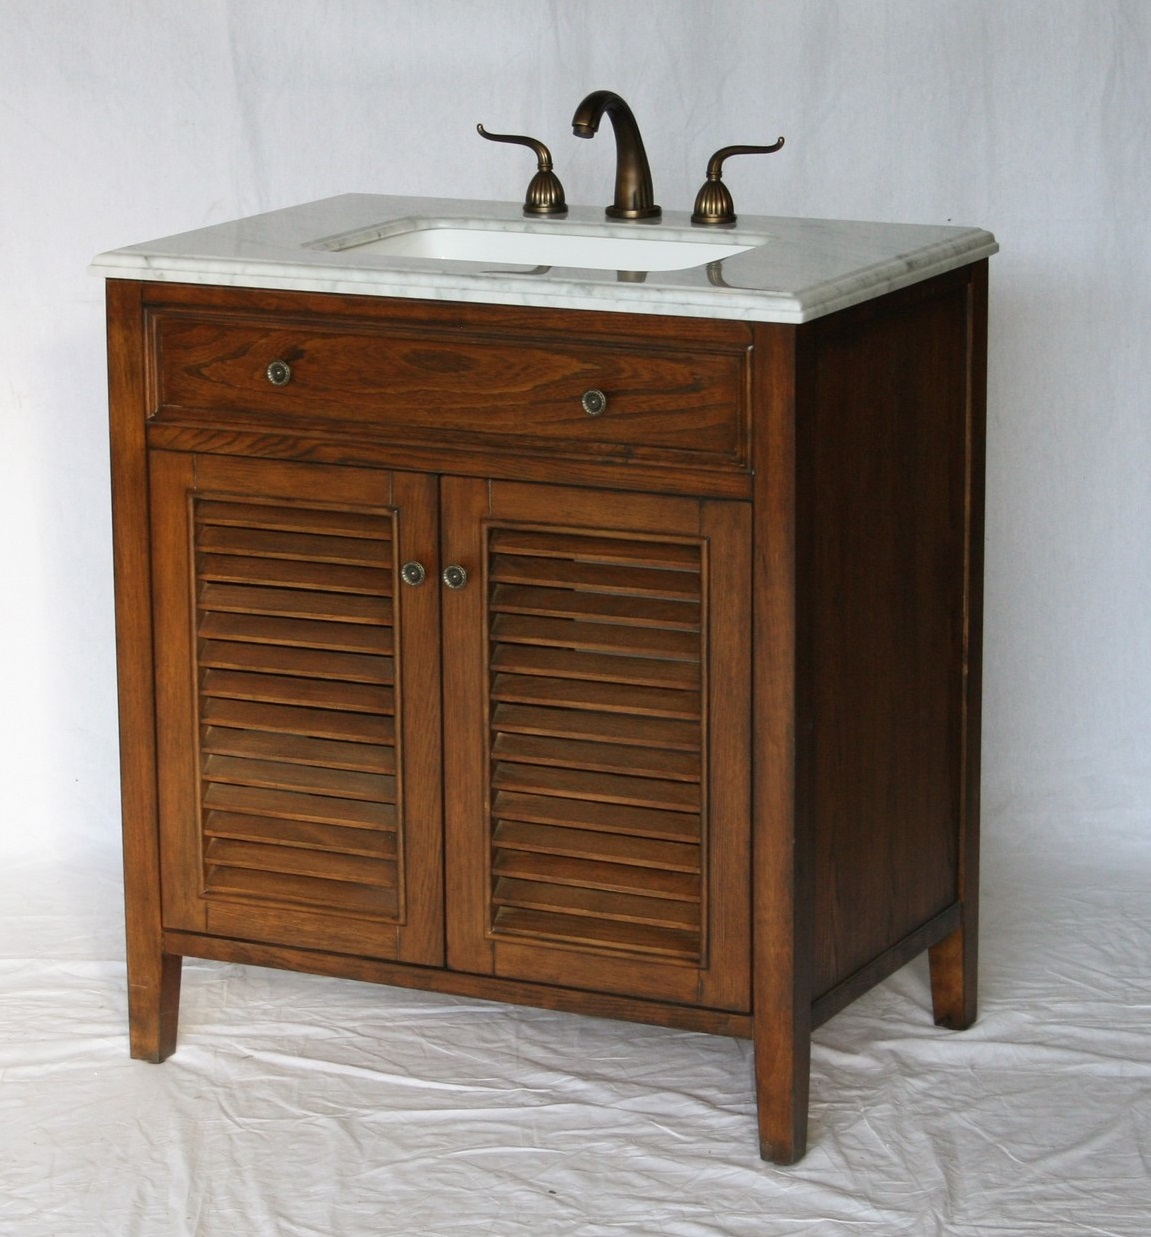 32 Inch Bathroom Vanity Coastal Cottage Beach Vintage Style Walnut Color (32\ Vanities I